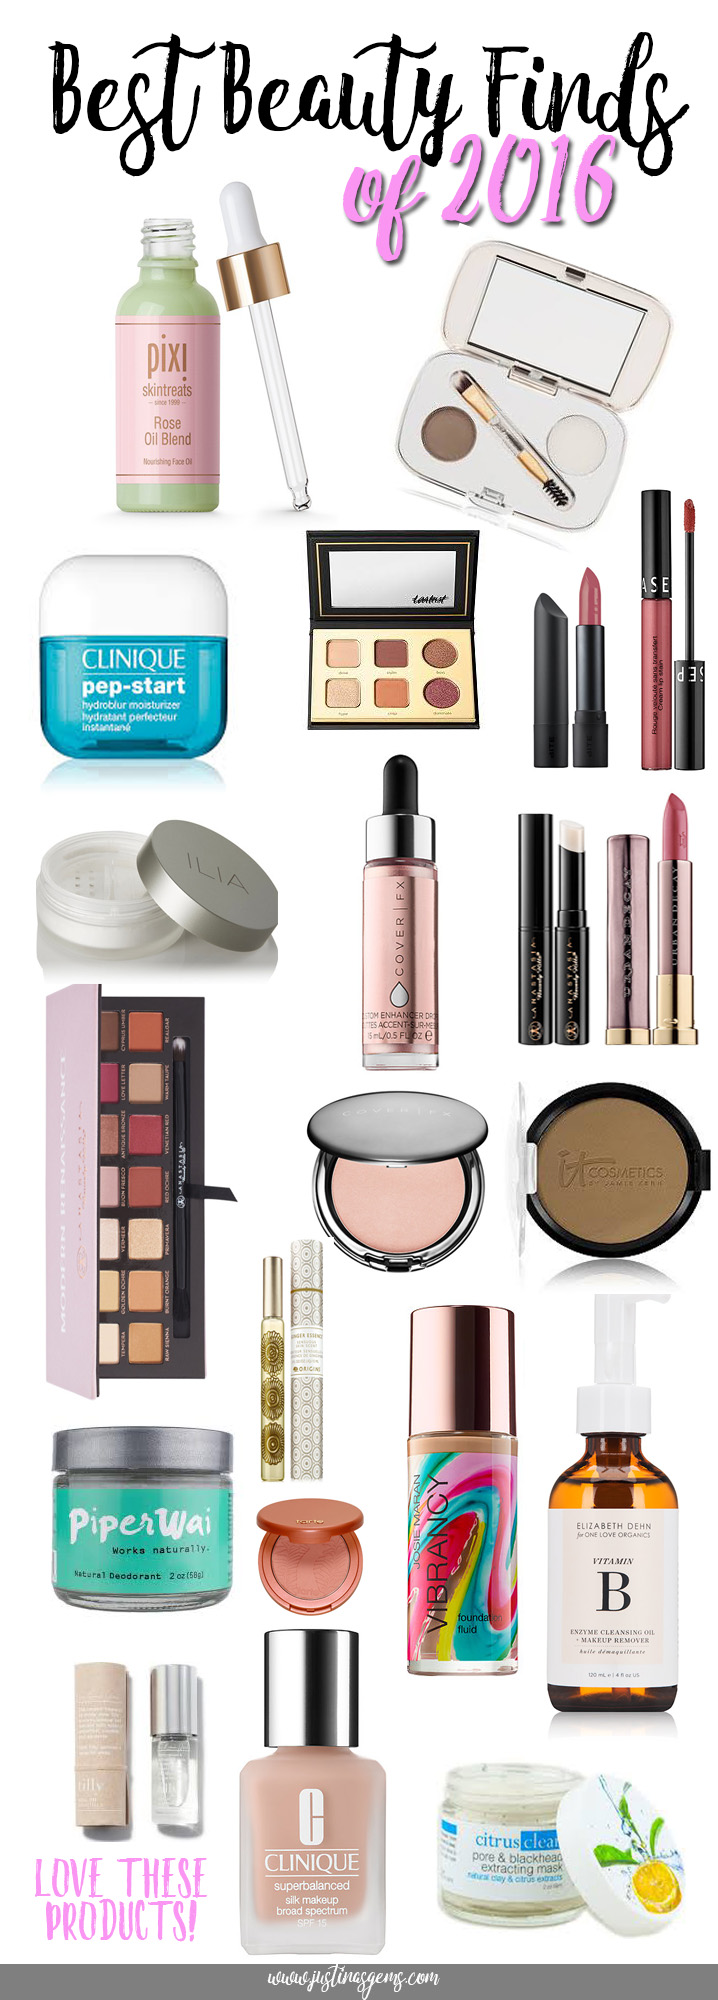 Best Beauty Finds of 2016